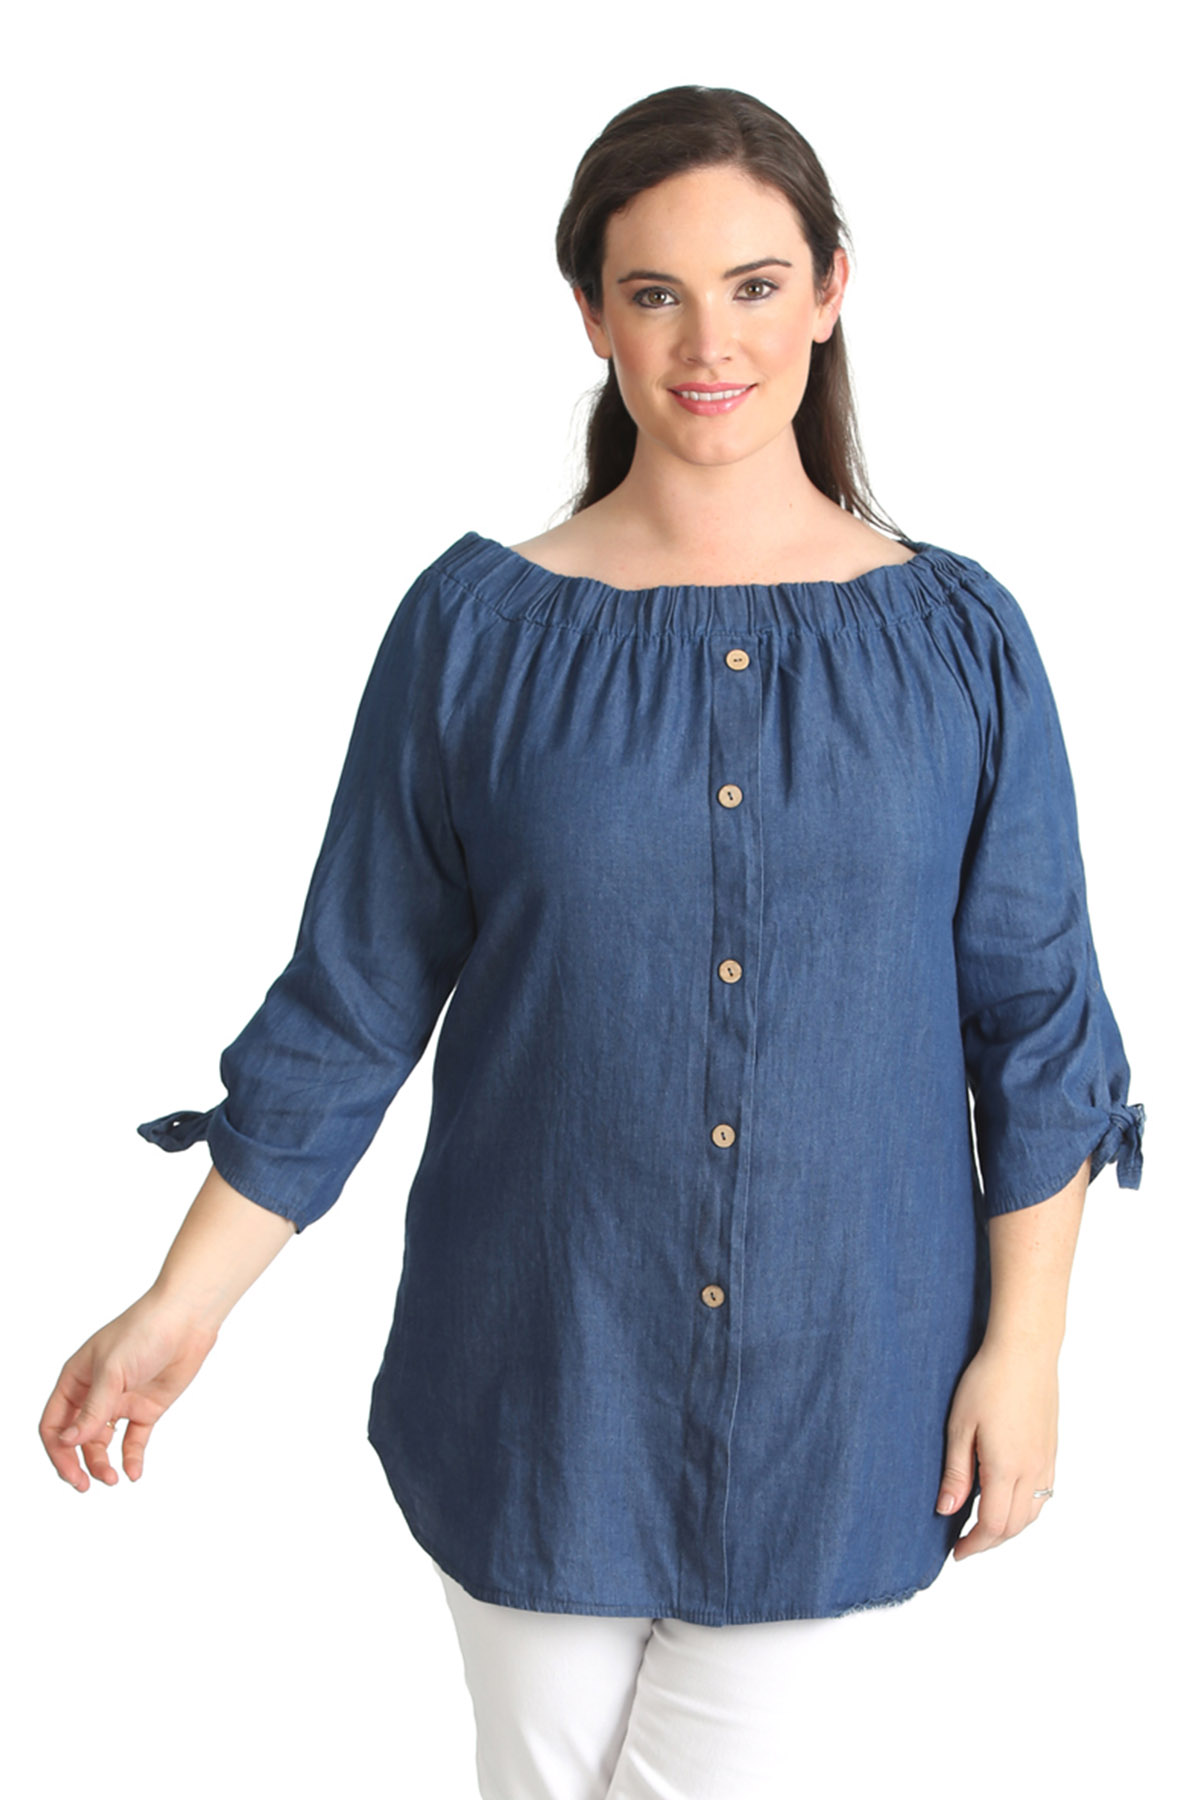 New womens shirt ladies plus size denim look top for Plus size womens shirts